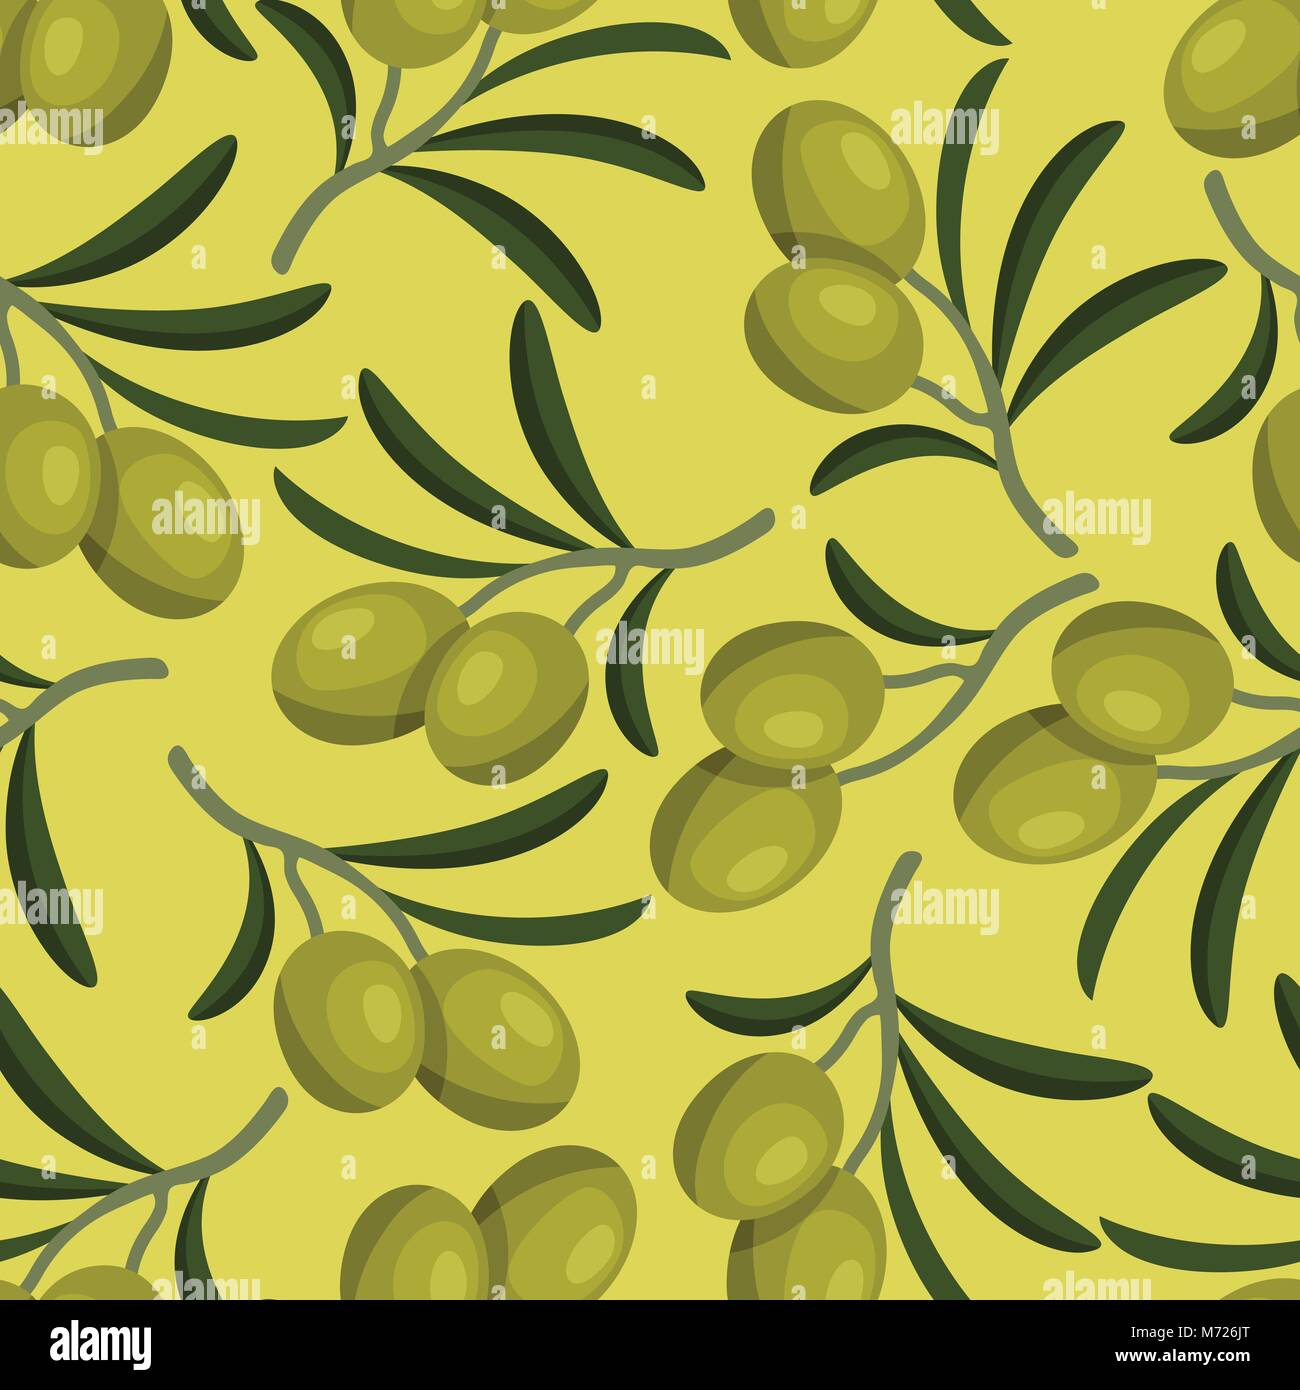 Seamless vector pattern with fresh ripe olive branches - Stock Vector